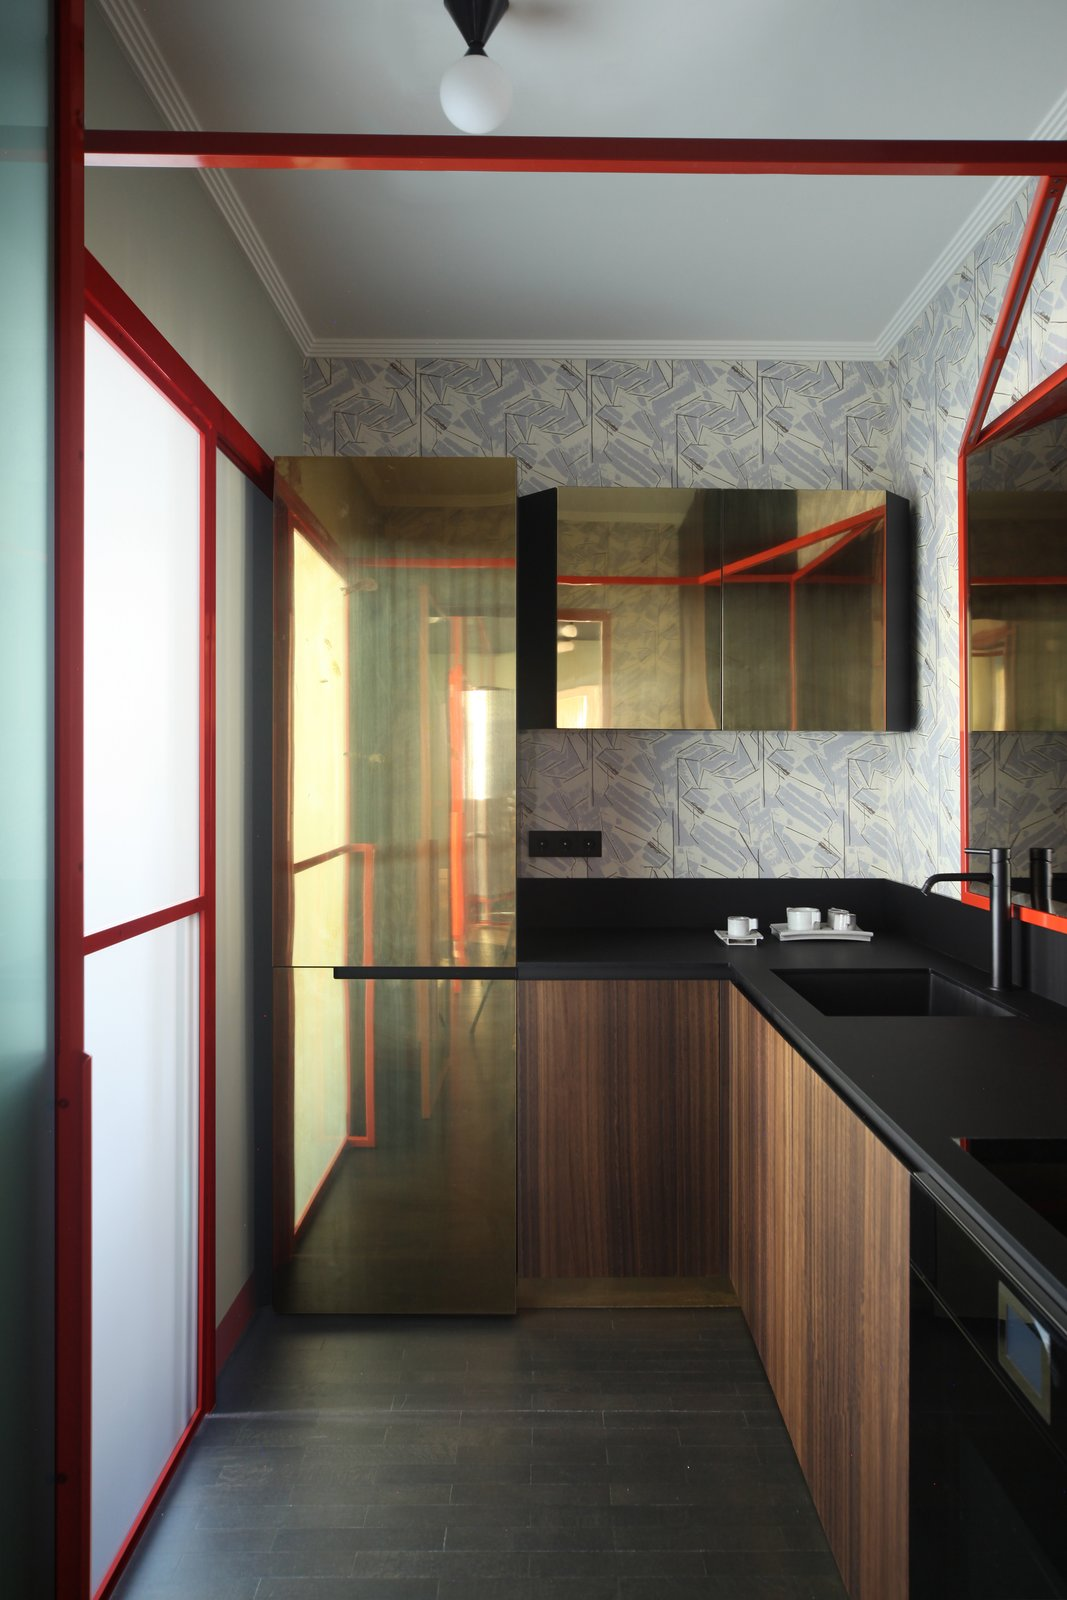 Kitchen, Laminate, Ceiling, Refrigerator, Drop In, Dark Hardwood, and Metal Kitchen: doors in eucalyptus wood and brass, countertop in high-thickness laminate Polaris by Abet, designed by Marcante-Testa, built by Materia Design and Om Project, faucets from Bellosta, lighting from Atelier Areti.  Best Kitchen Laminate Dark Hardwood Photos from This Venetian Apartment Is Bursting With Incredible European Furnishings